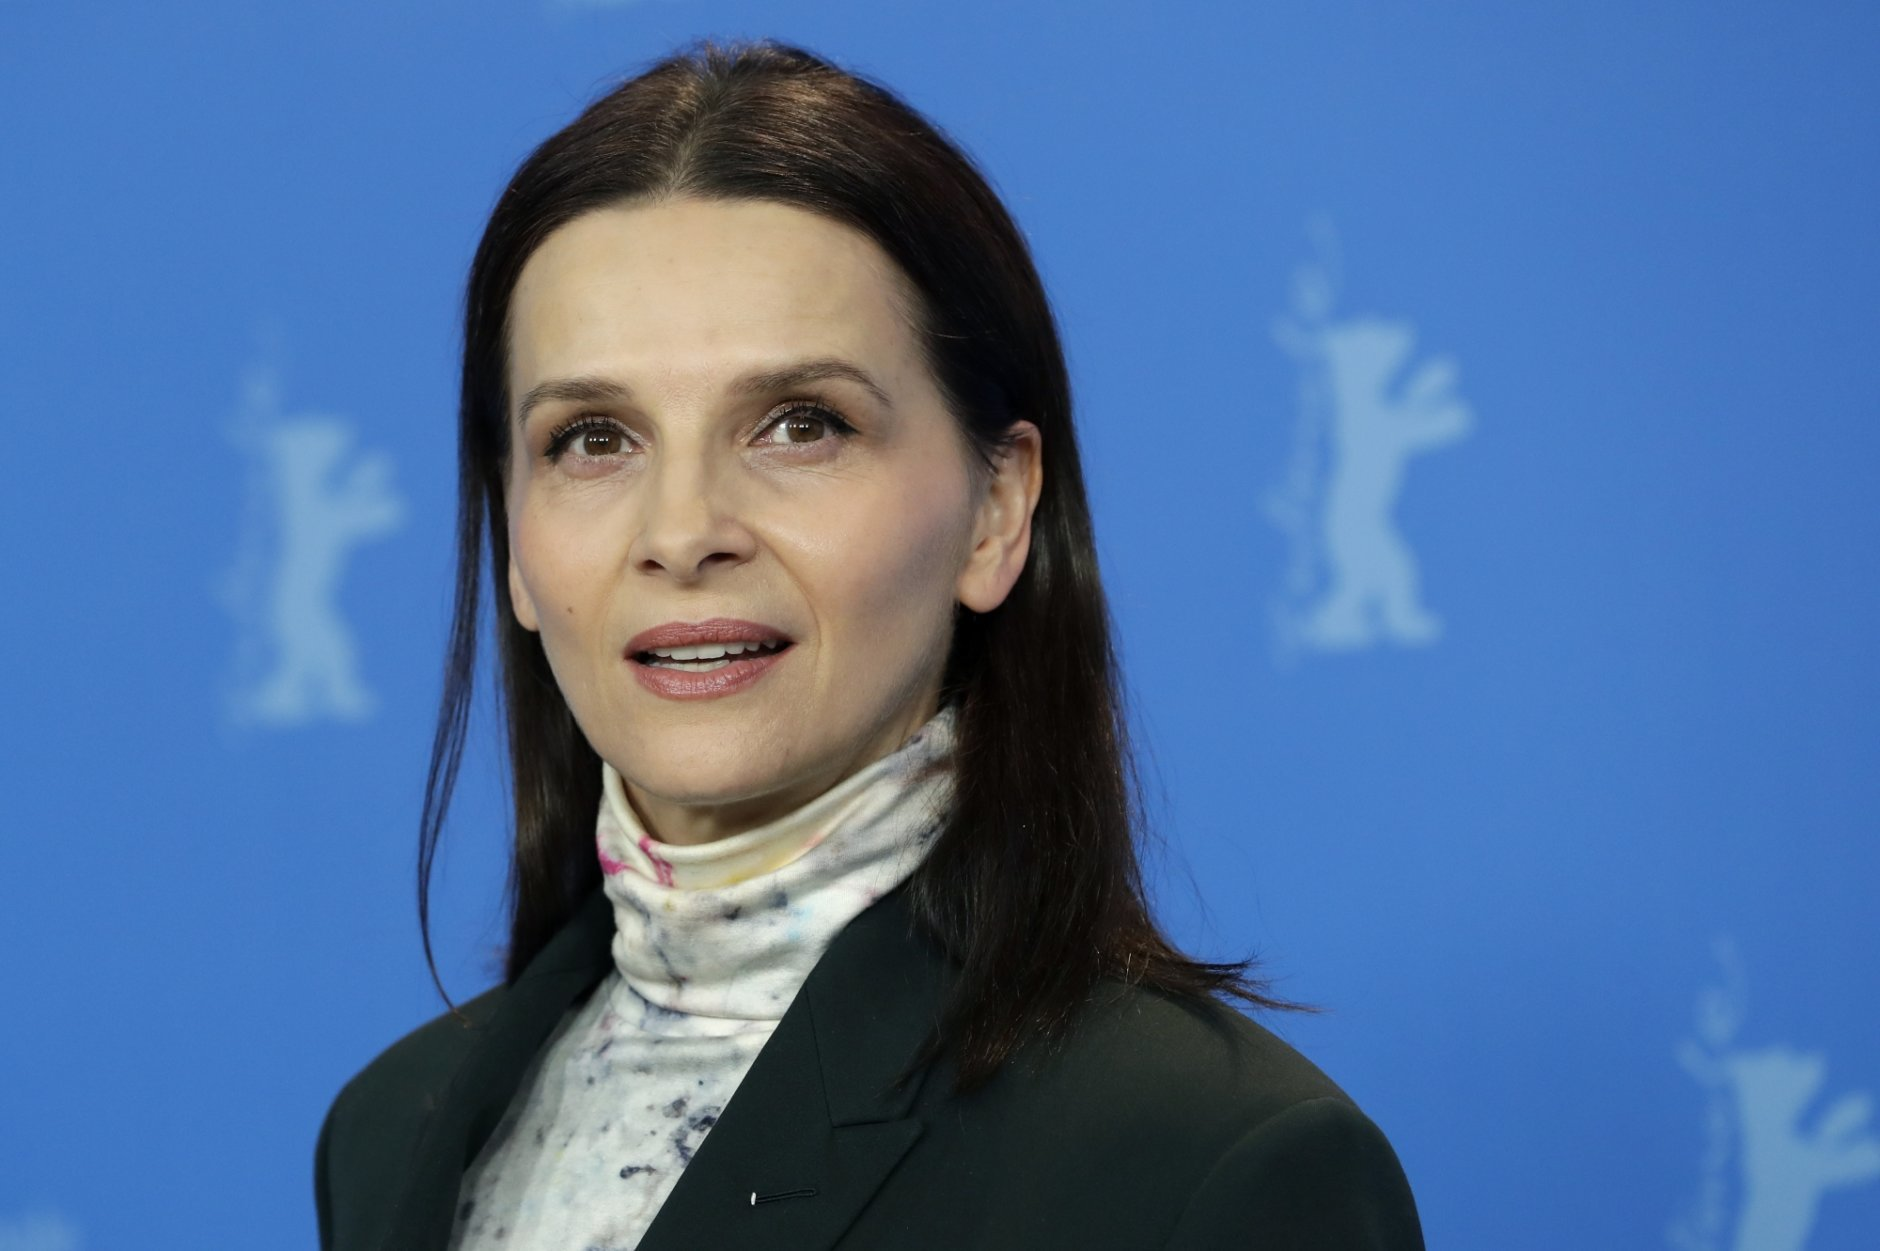 Jury president Juliette Binoche poses for the photographers during a photo call at the 2019 Berlinale Film Festival in Berlin, Germany, Thursday, Feb. 7, 2019. (AP Photo/Michael Sohn)